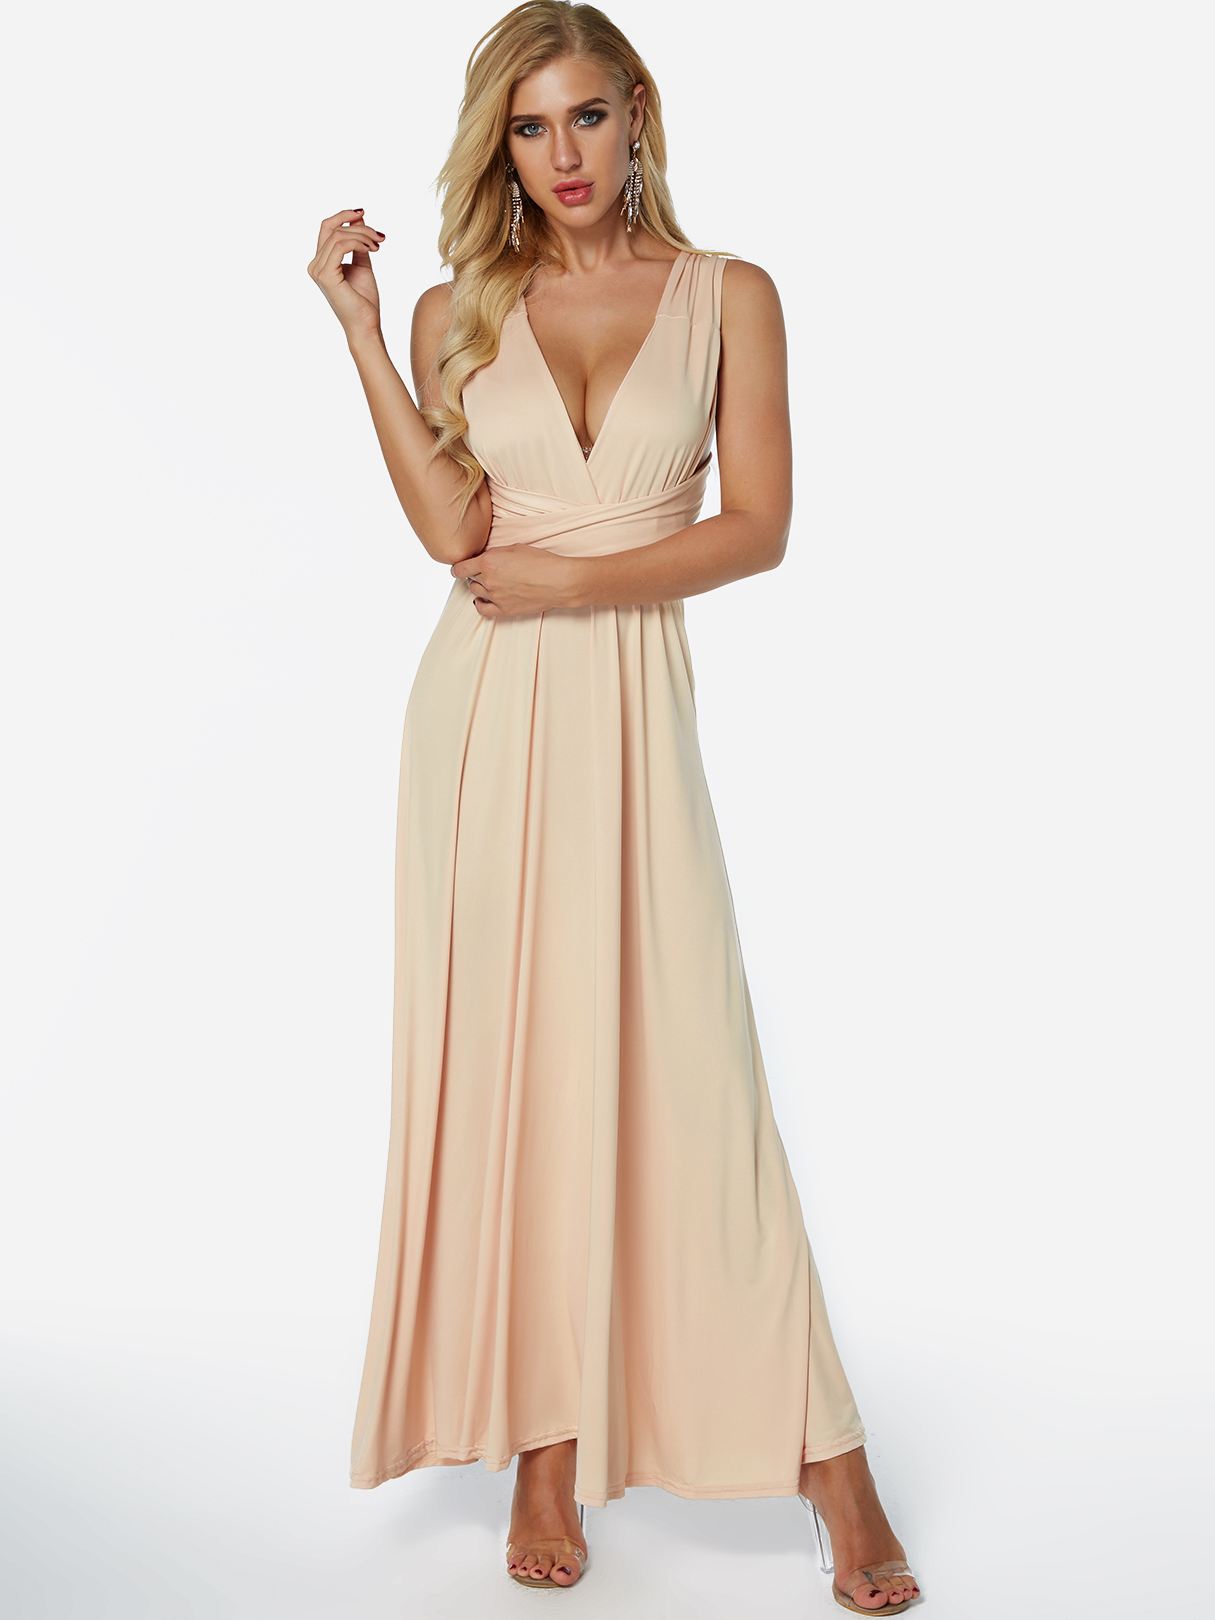 Champagne Backless Criss-cross Deep V-neck Maxi Dress